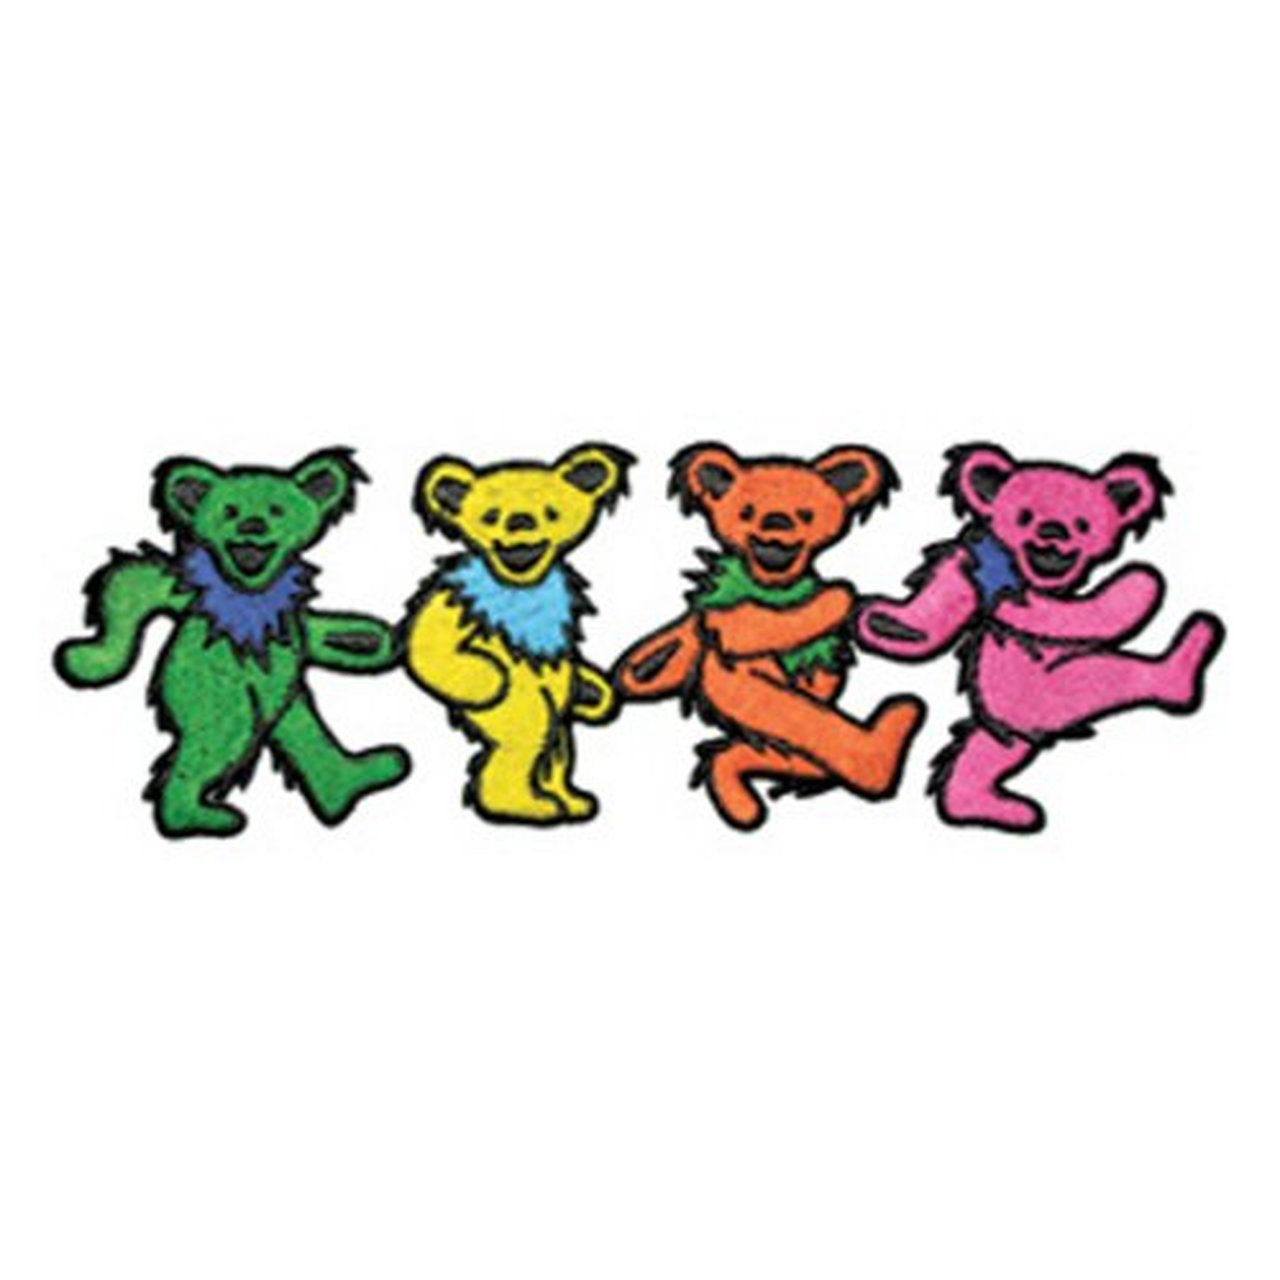 Grateful Dead Dancing Bears.